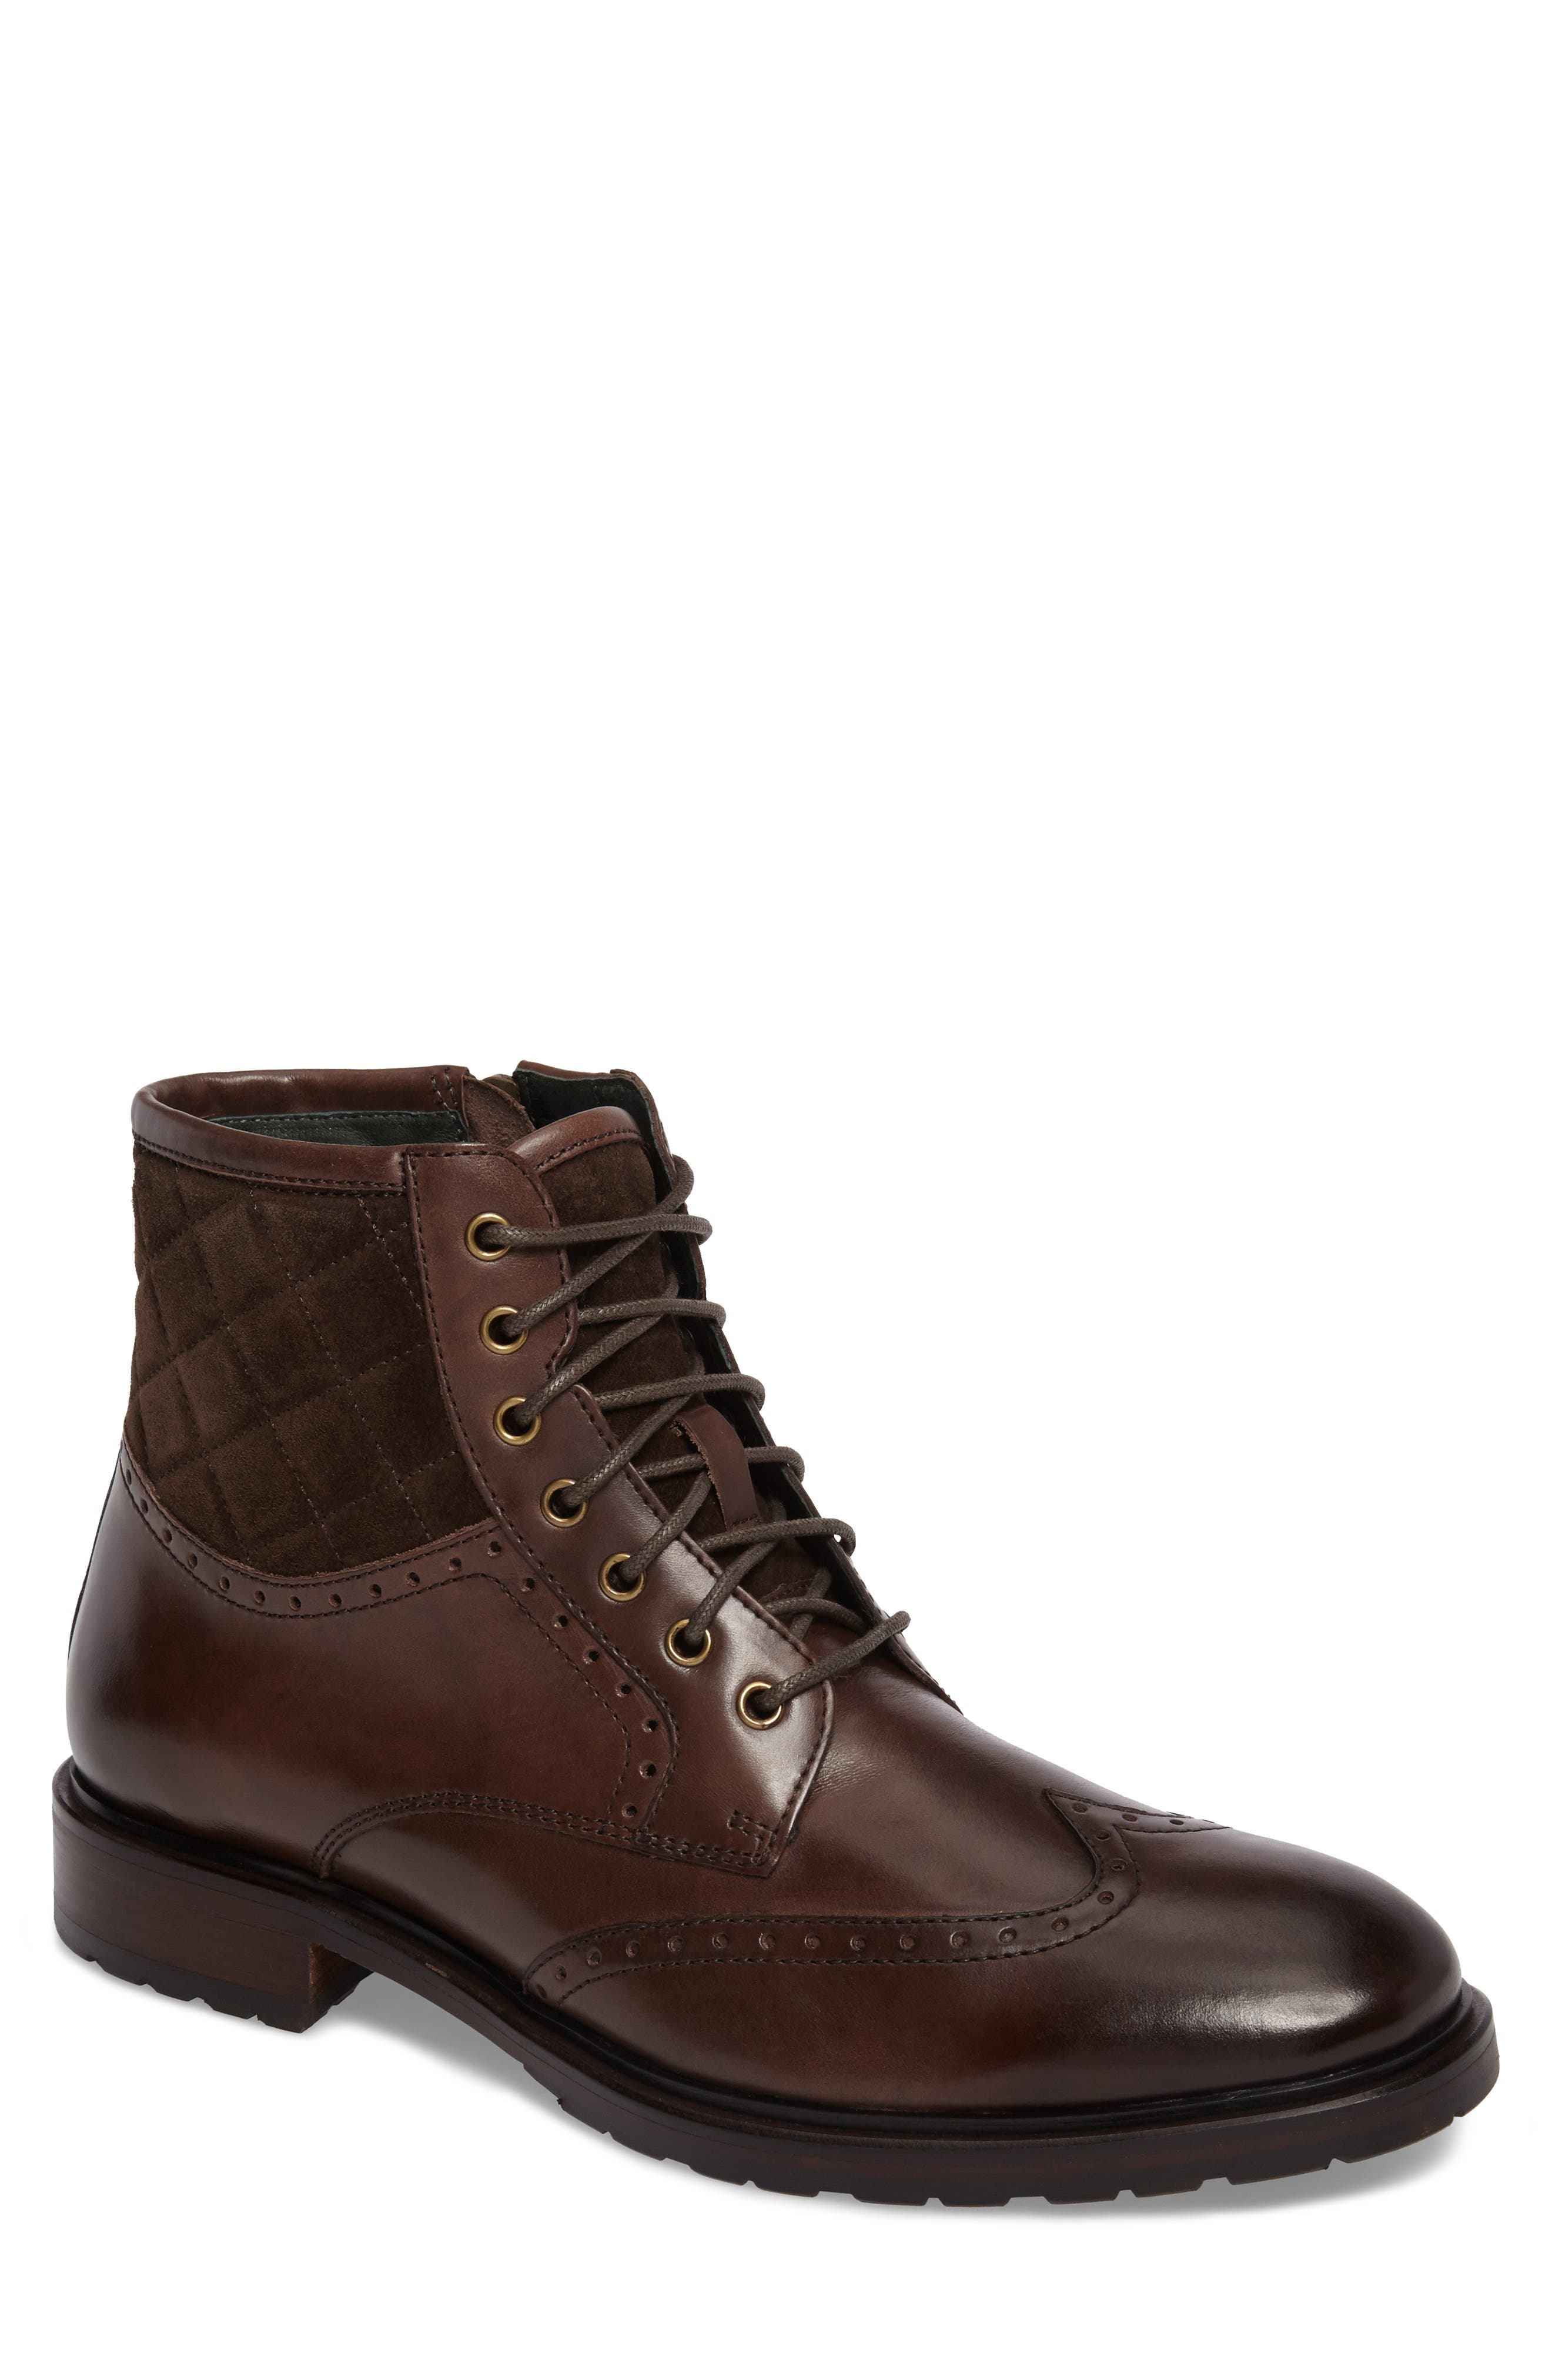 Myles Wingtip Boot,                             Main thumbnail 1, color,                             206